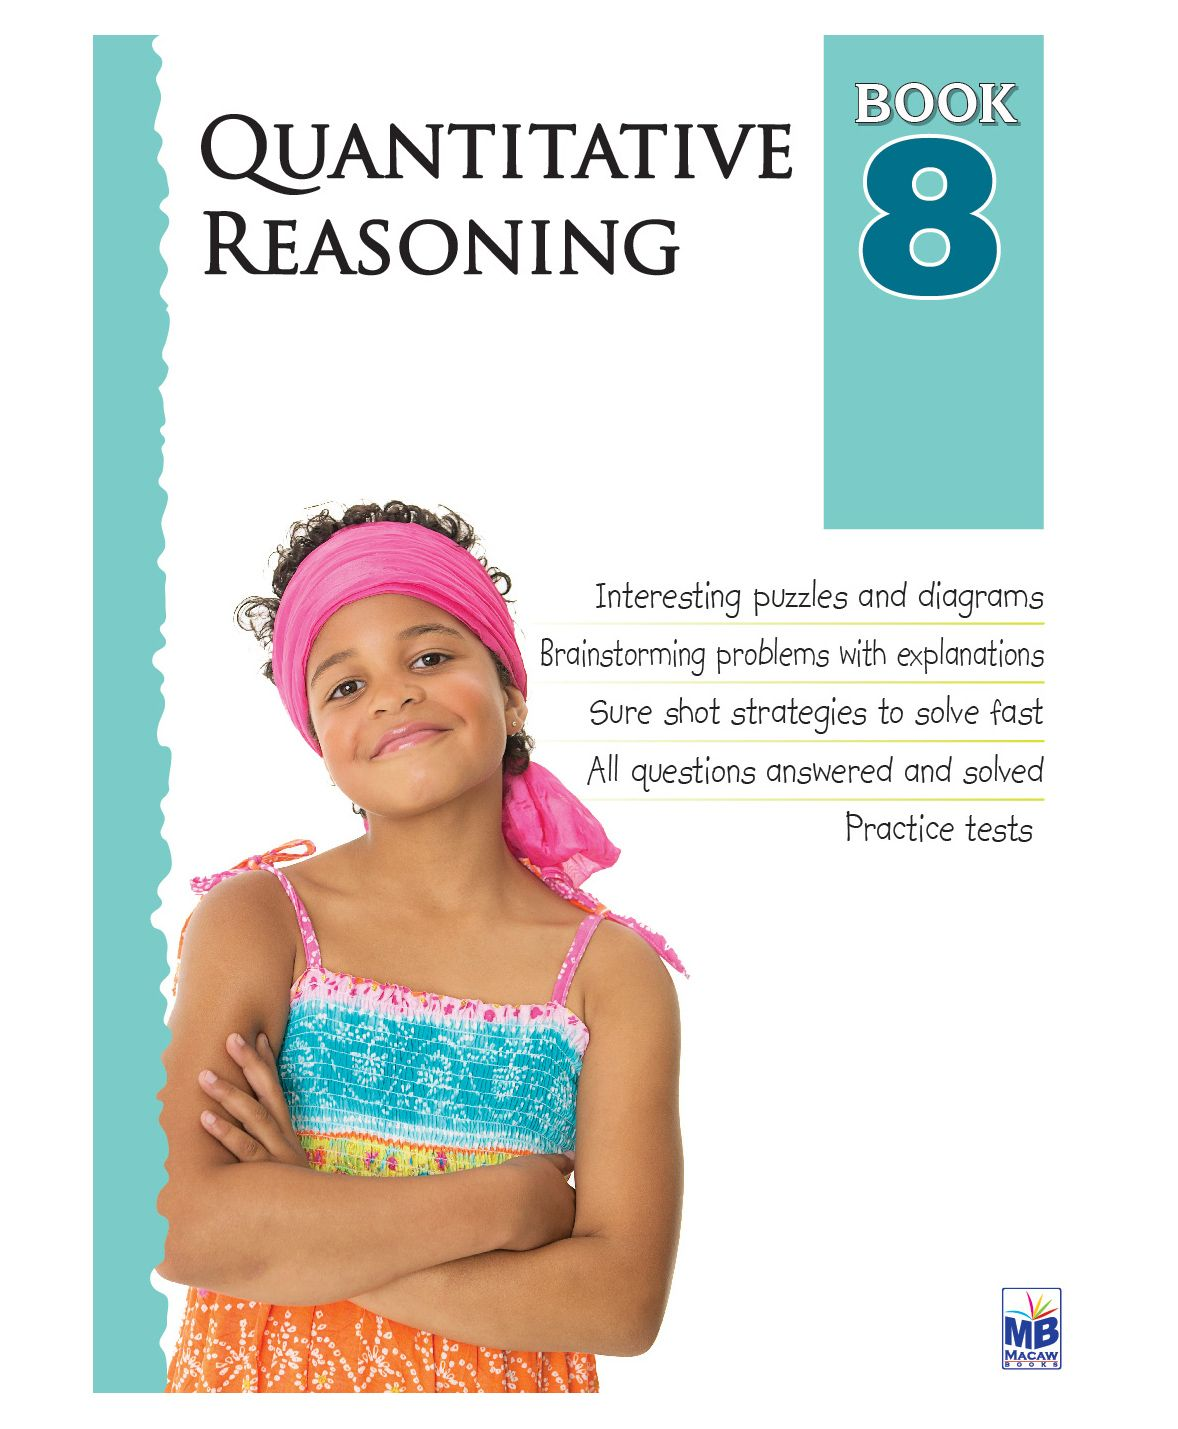 Macaw Quantitative Reasoning Book 8 English Online in India, Buy at Best  Price from Firstcry com - 1413288